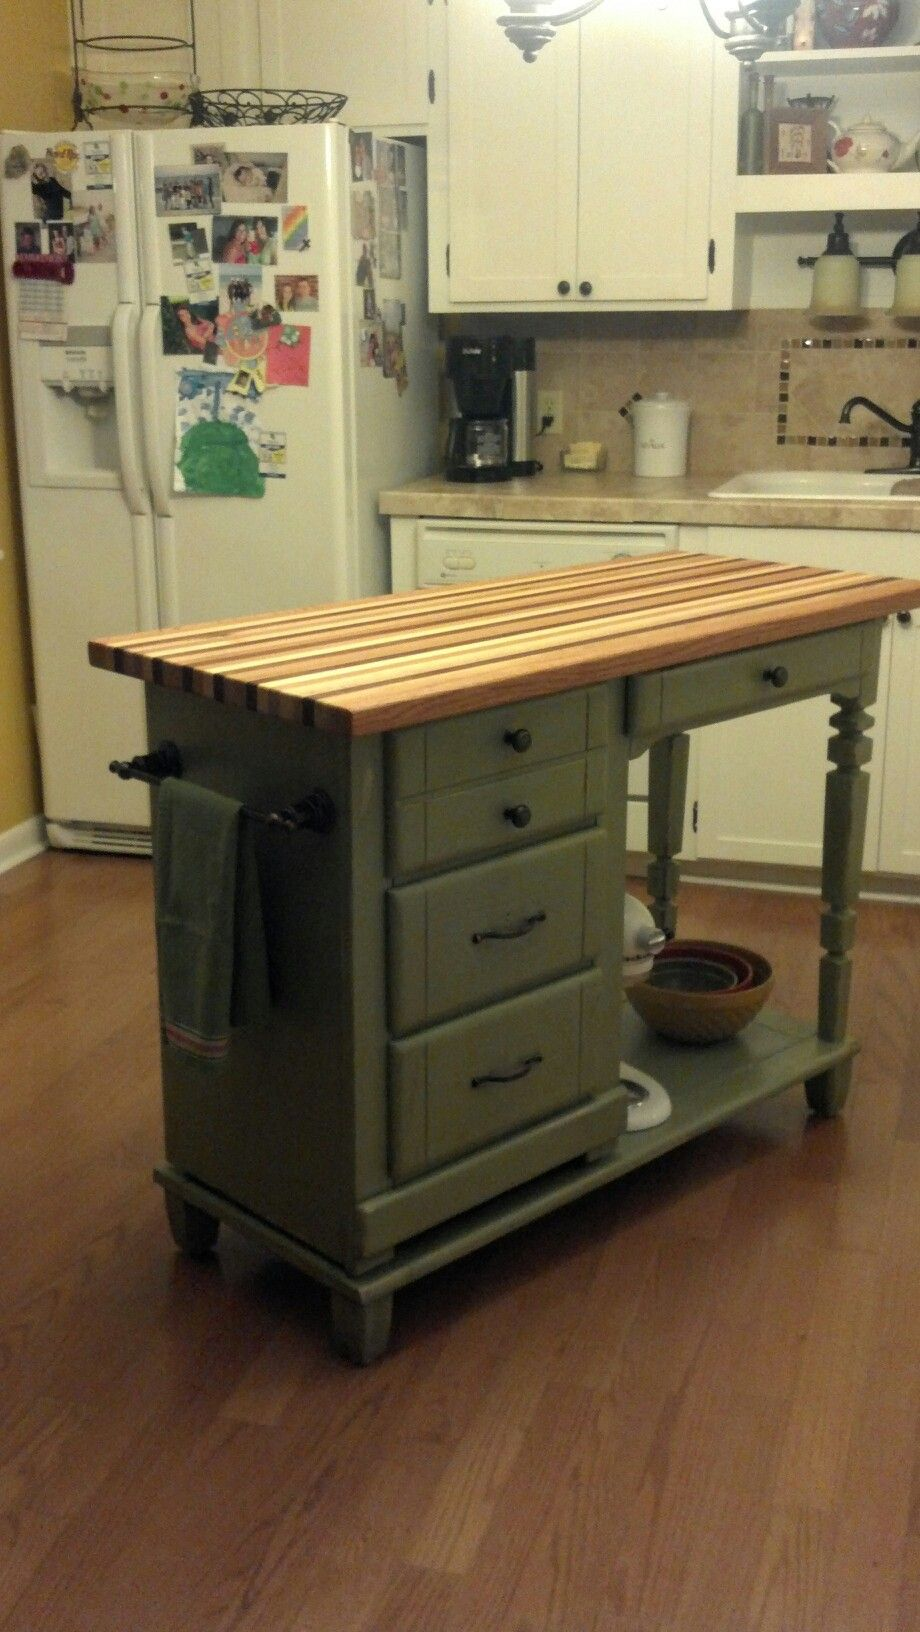 Diy Kitchen Island Repurpose Your Desk Diy Kitchen Island Diy Kitchen Repurposed Furniture